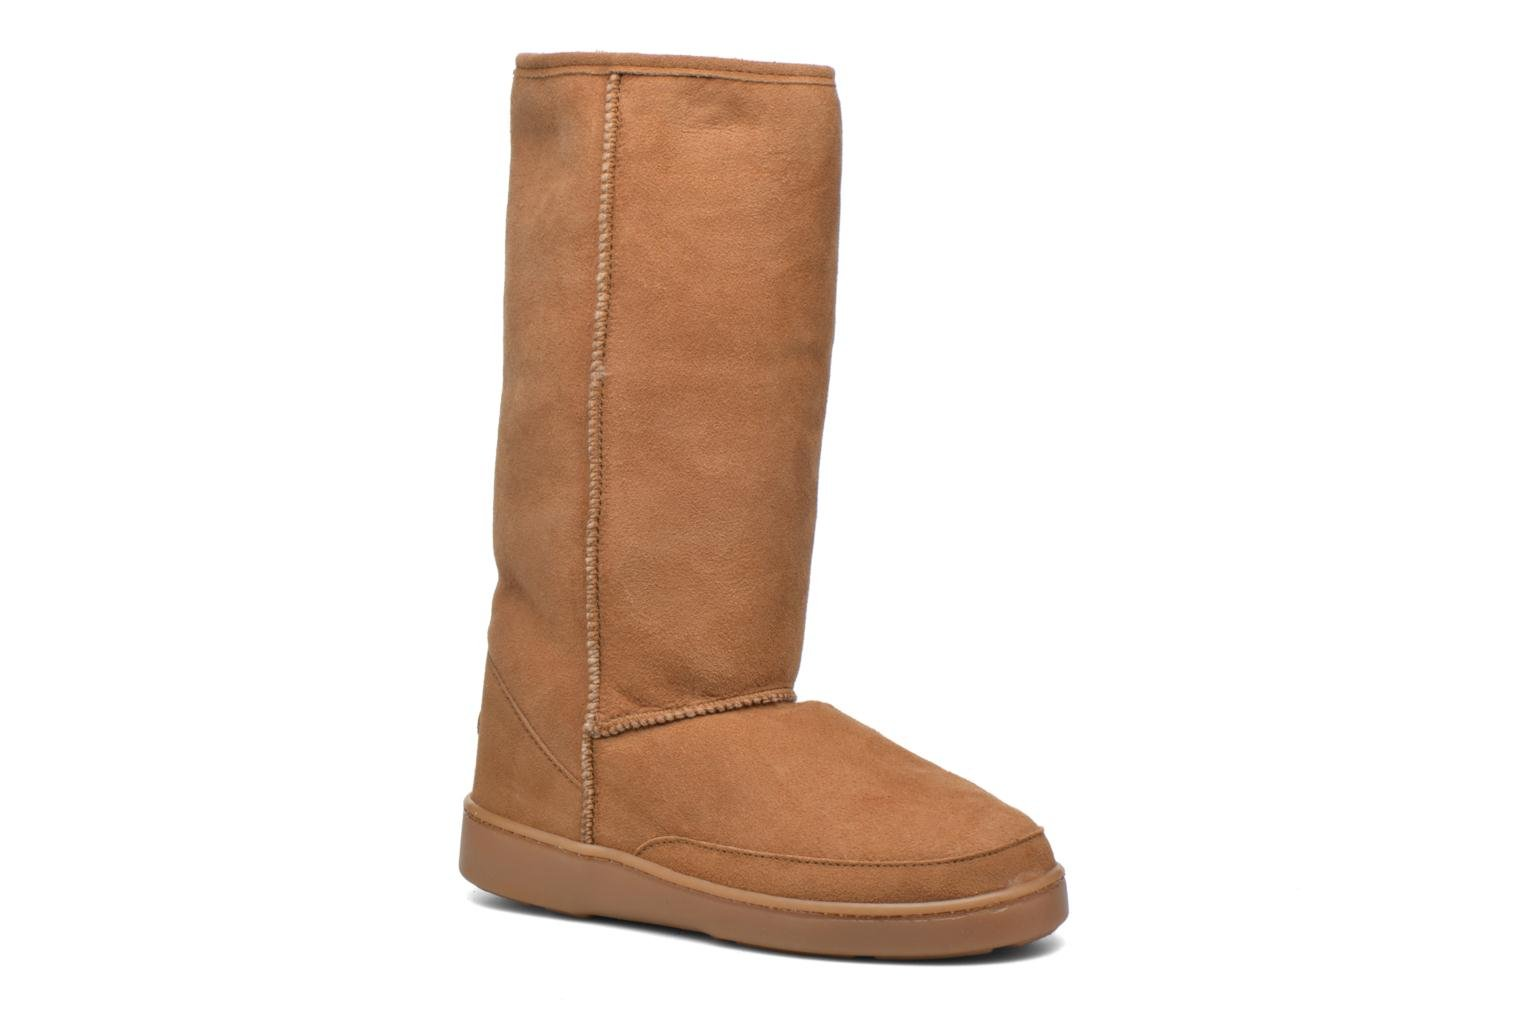 Tall Sheepskin Pug Boot H Gold Tan Sheepskin